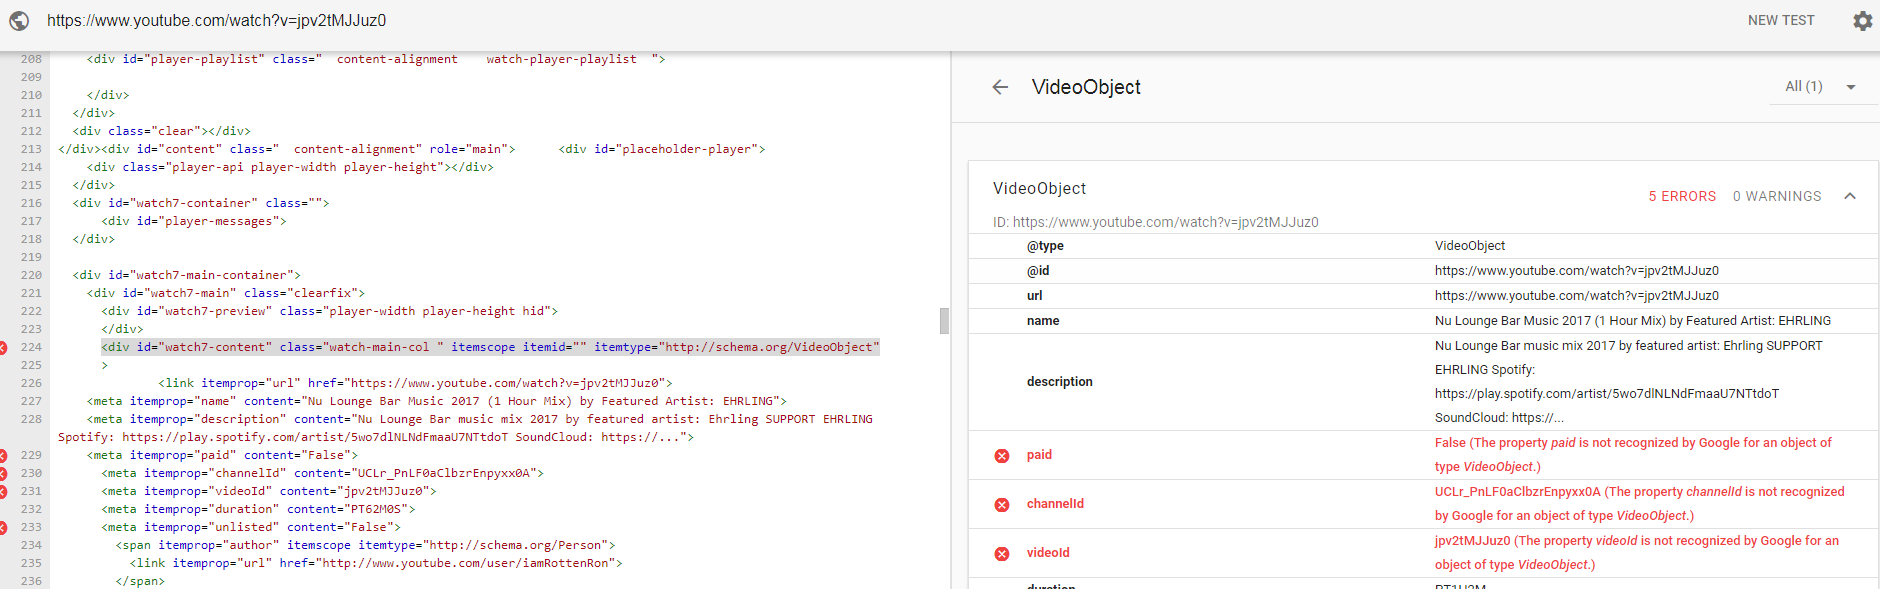 Viceo object testing tool schema